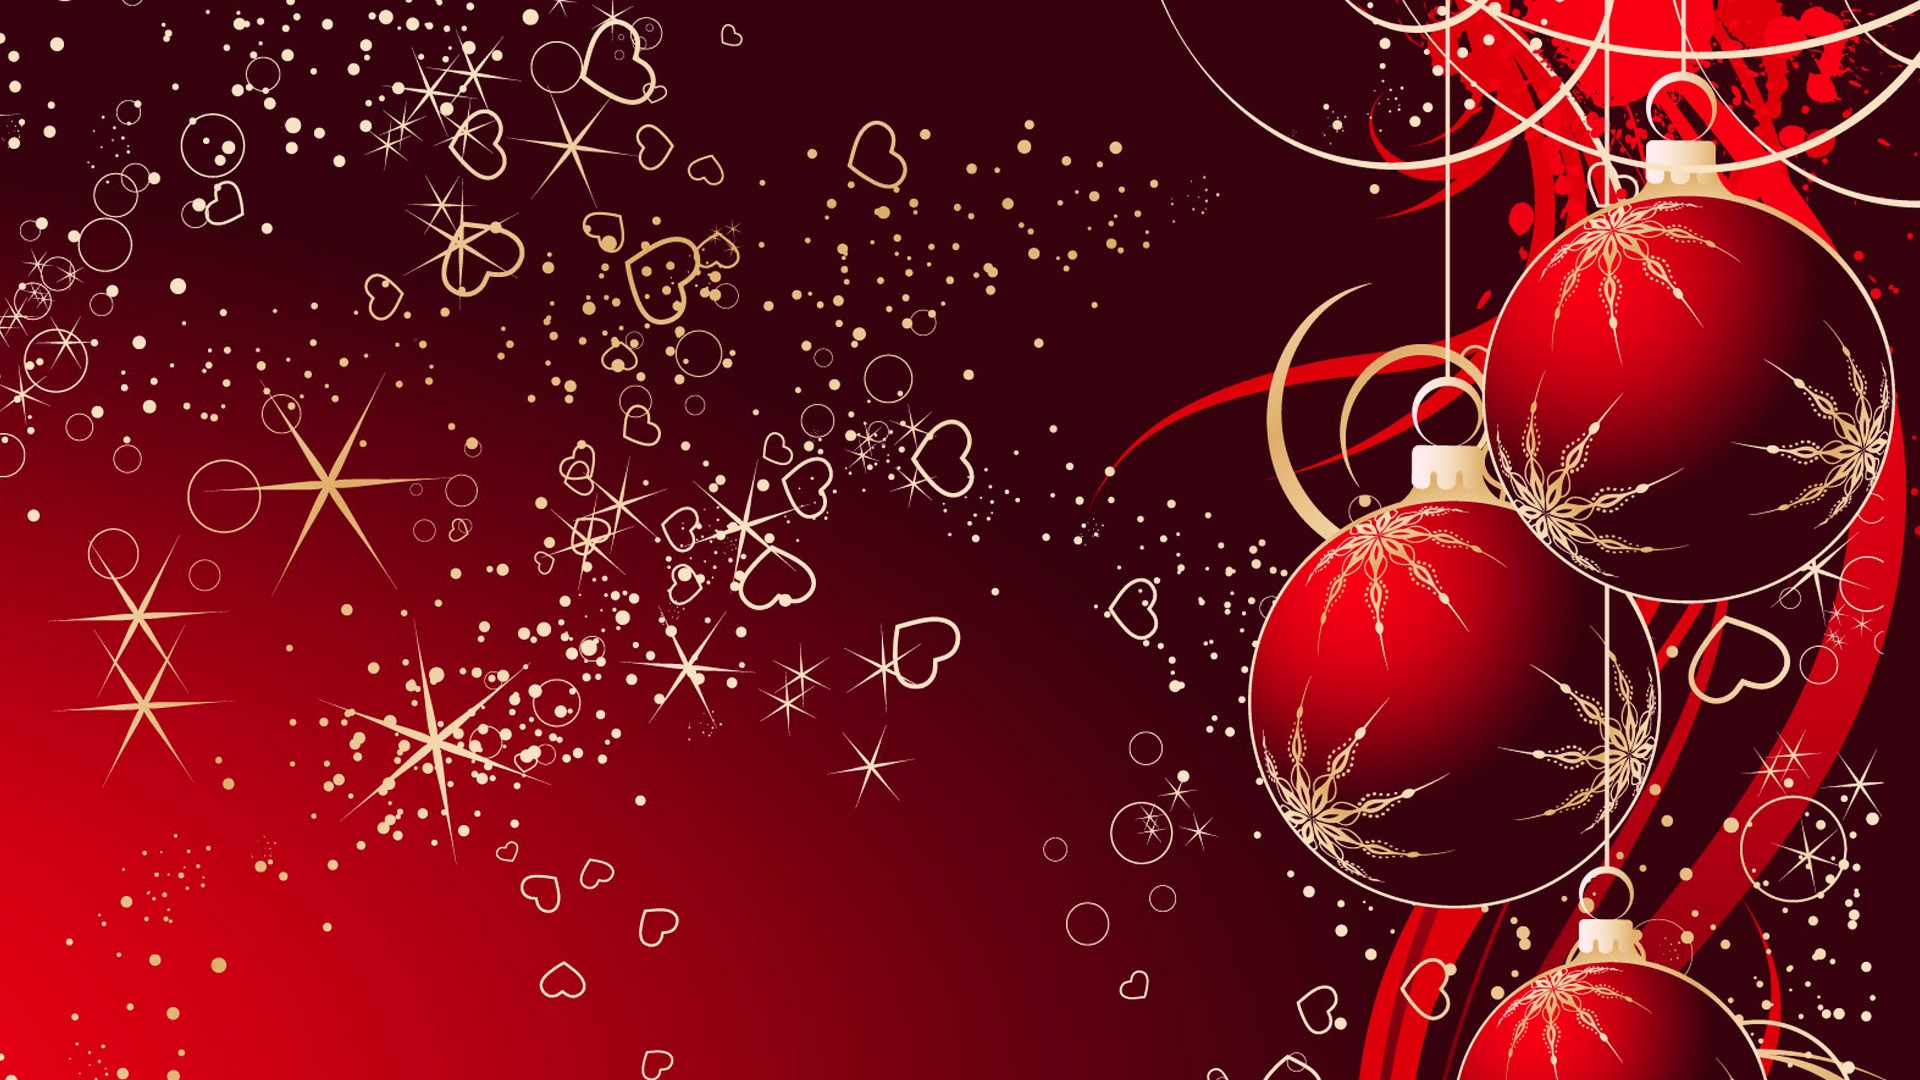 christmas hd wallpaper | 1920x1080 | #43060